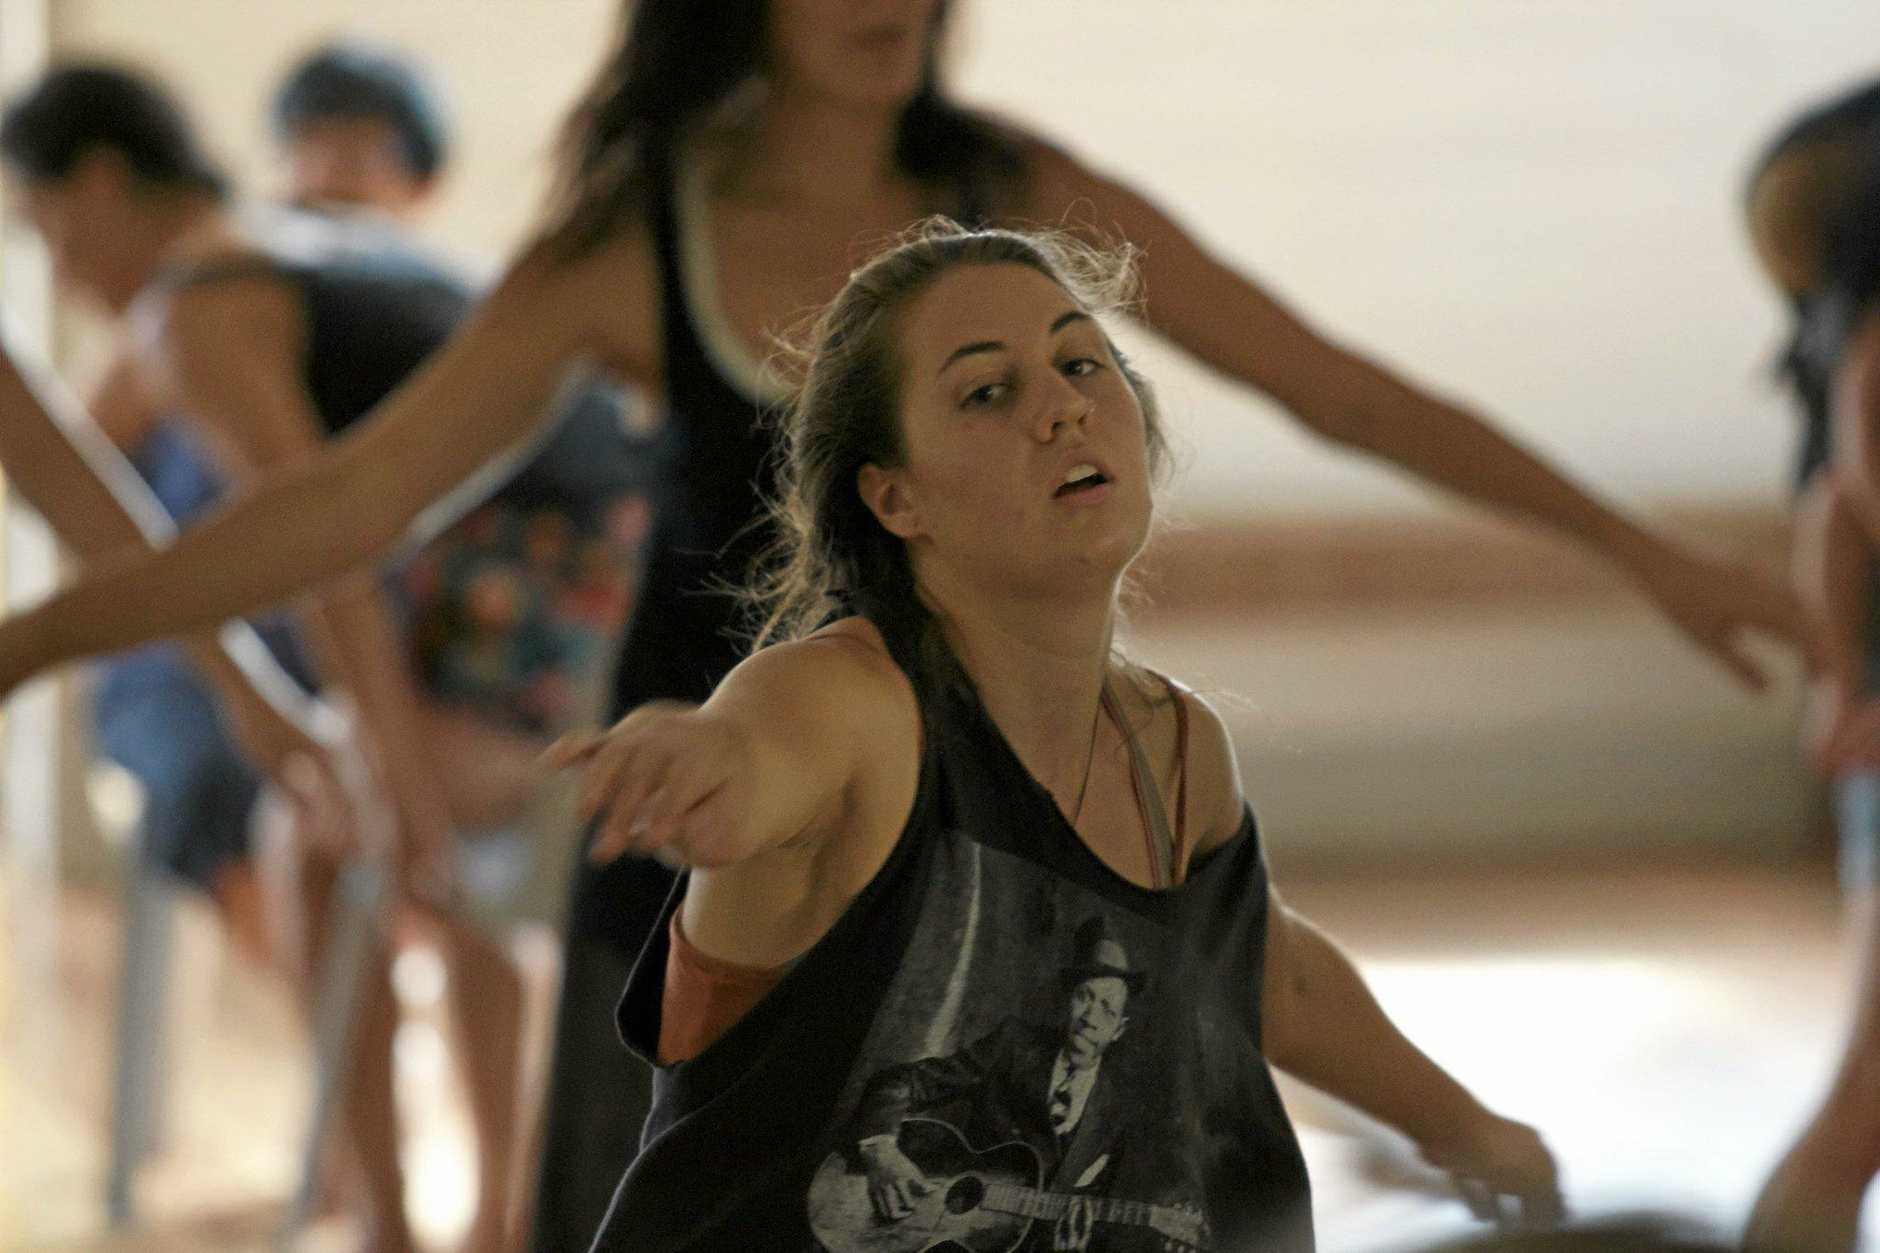 MOVES: Dancer Tess Eckert is part of The Main Event by The Corner Dance Lab in Federal.